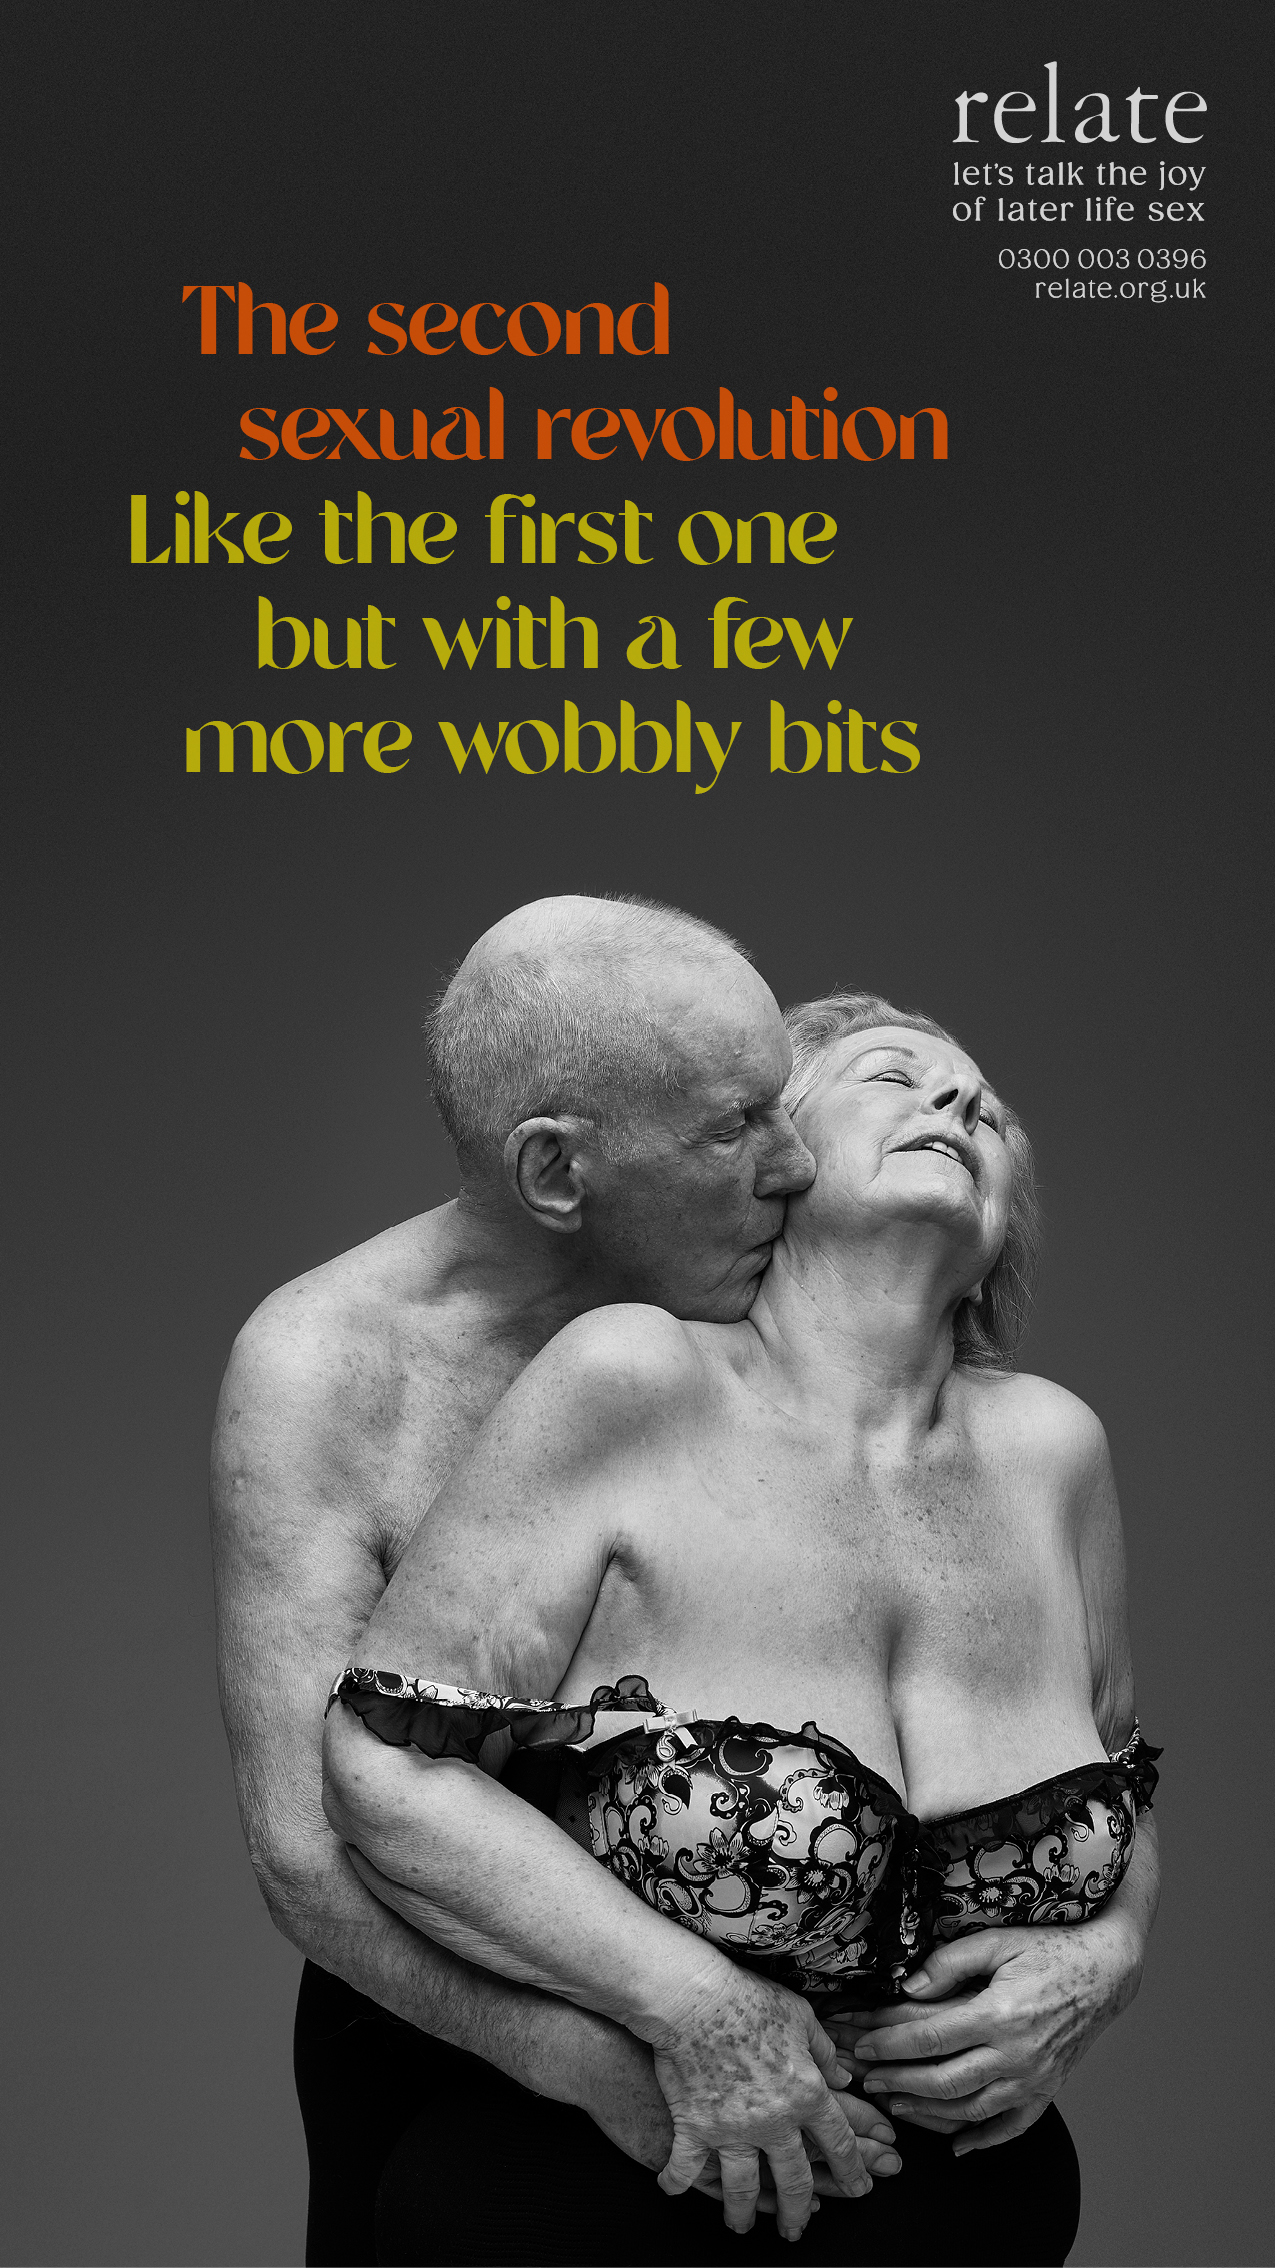 older man and woman embracing passionately with caption 'The second sexual revolution. Like the first one but with a few more wobbly bits.'